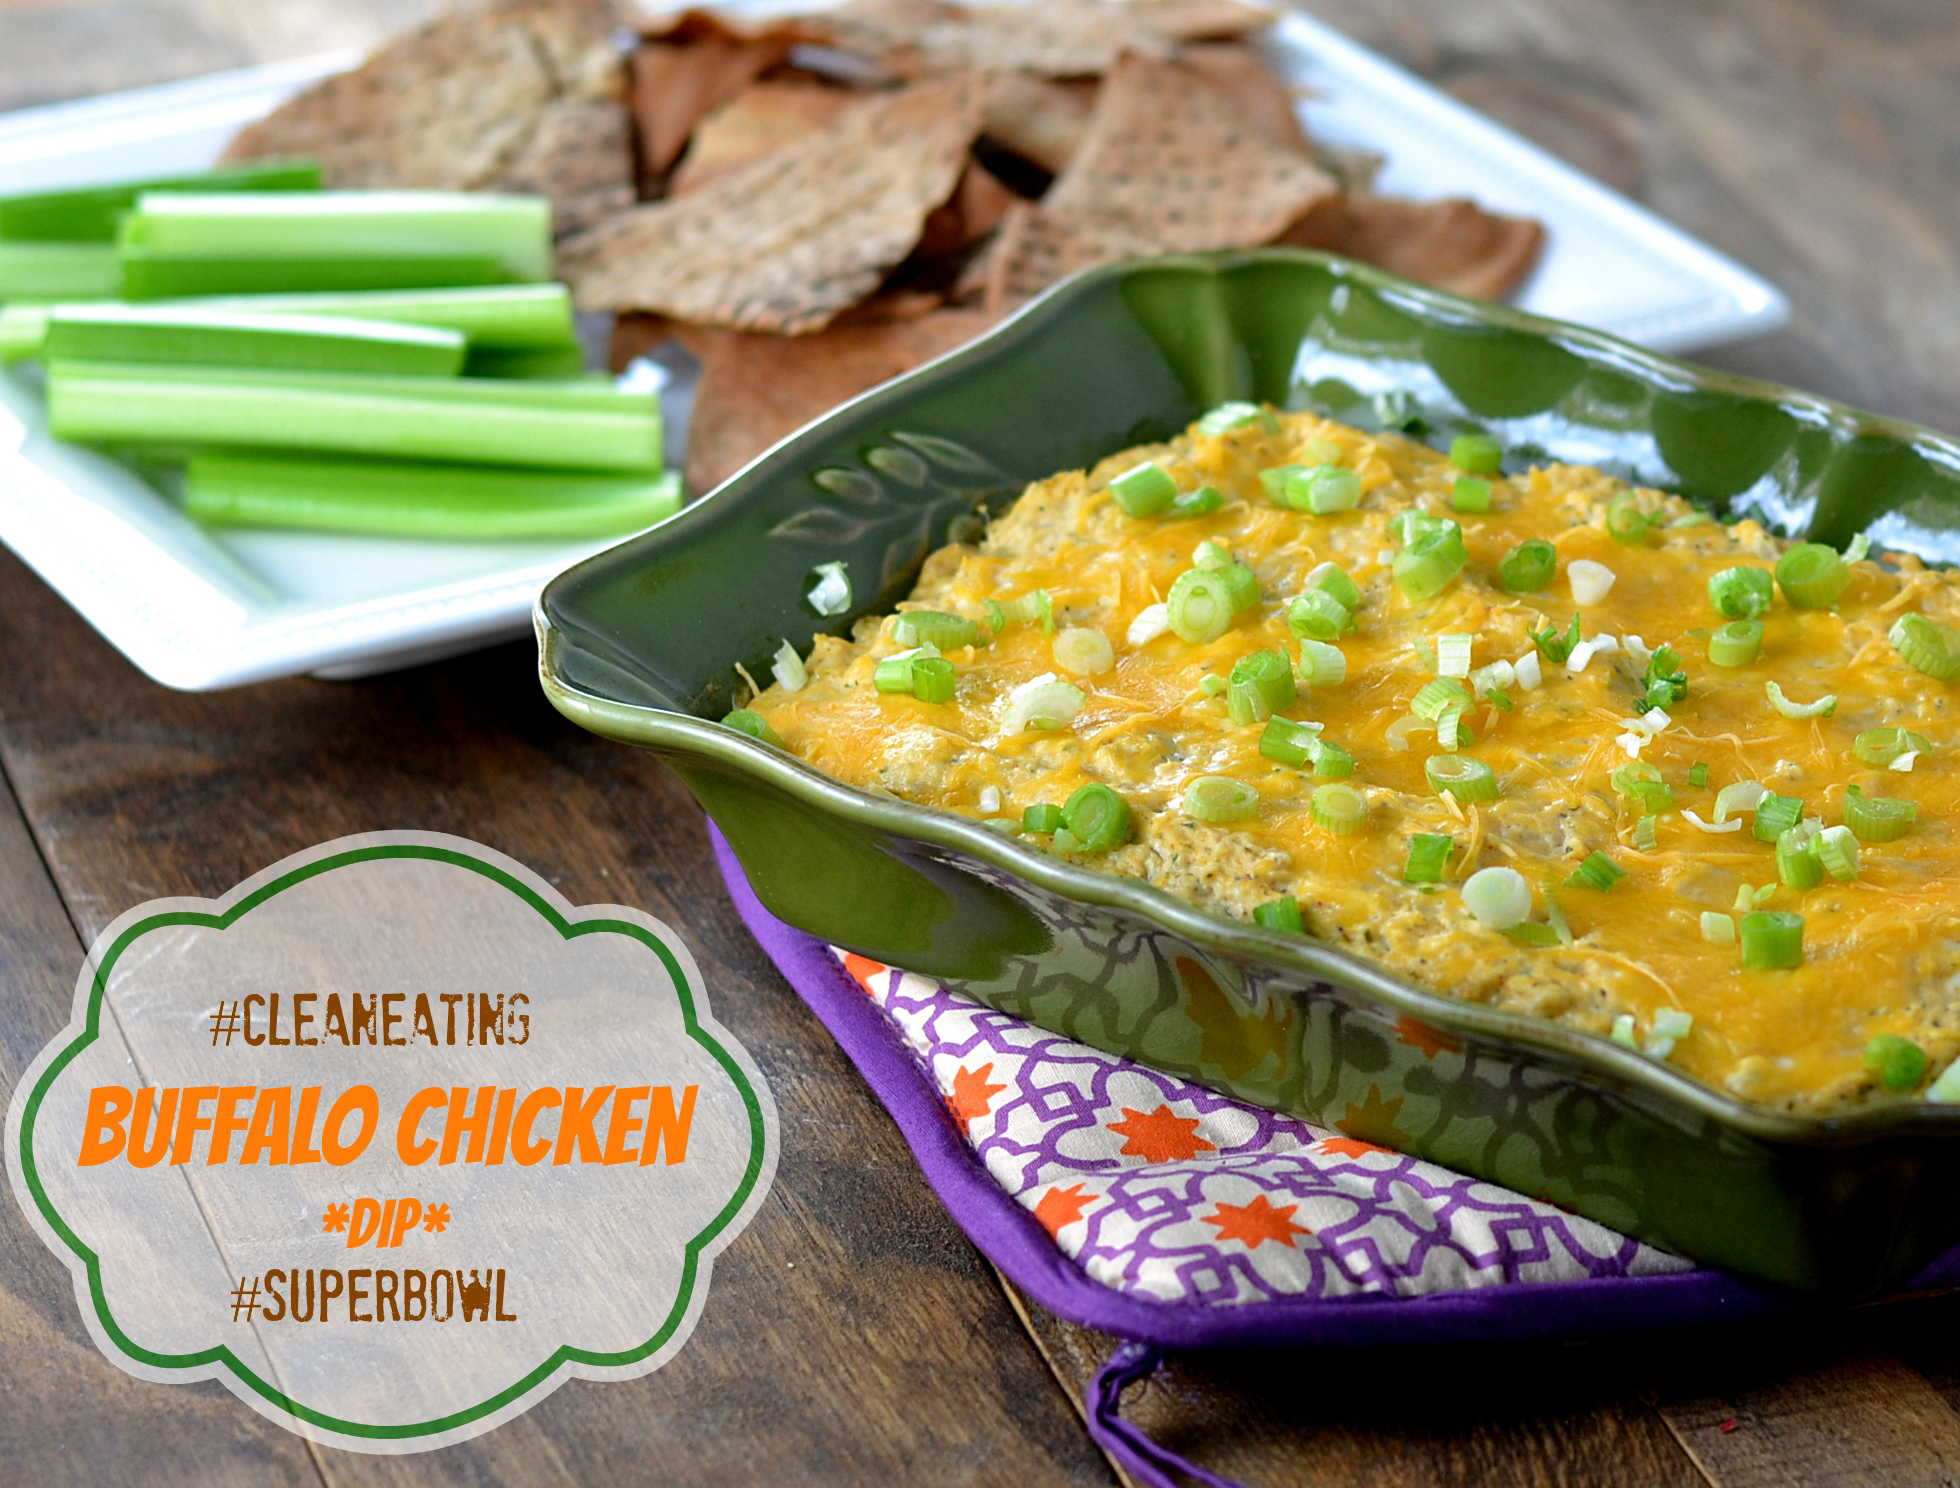 Cara's Cravings » #CLEANEATING Creamy Buffalo Chicken *CRACK DIP*